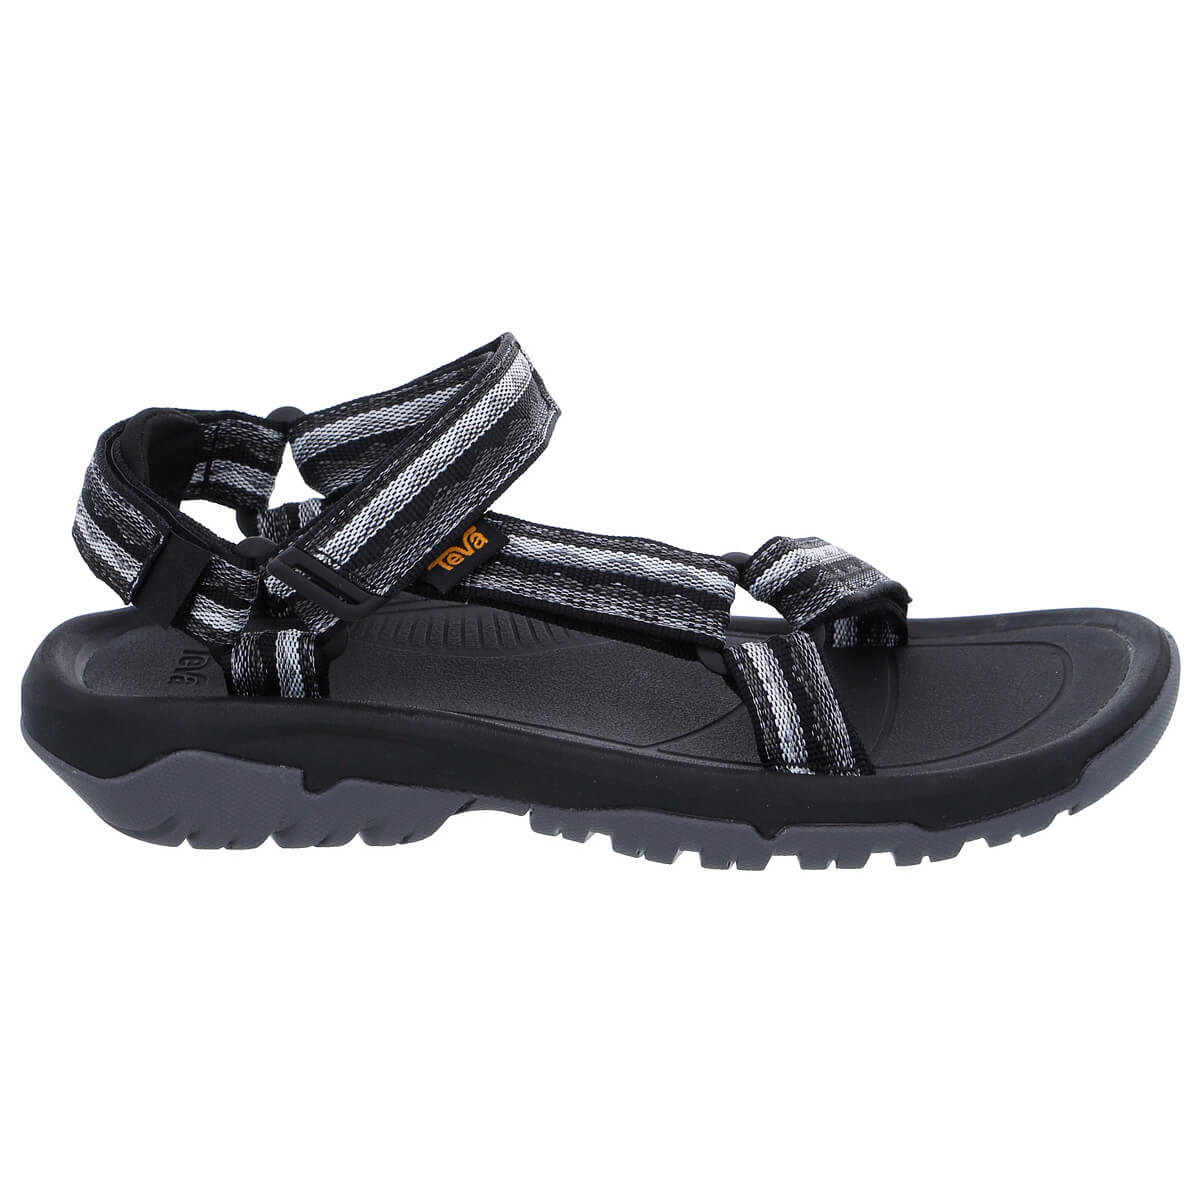 53689f2b9161c4 Teva - Women s Hurricane XLT 2 - Sandals